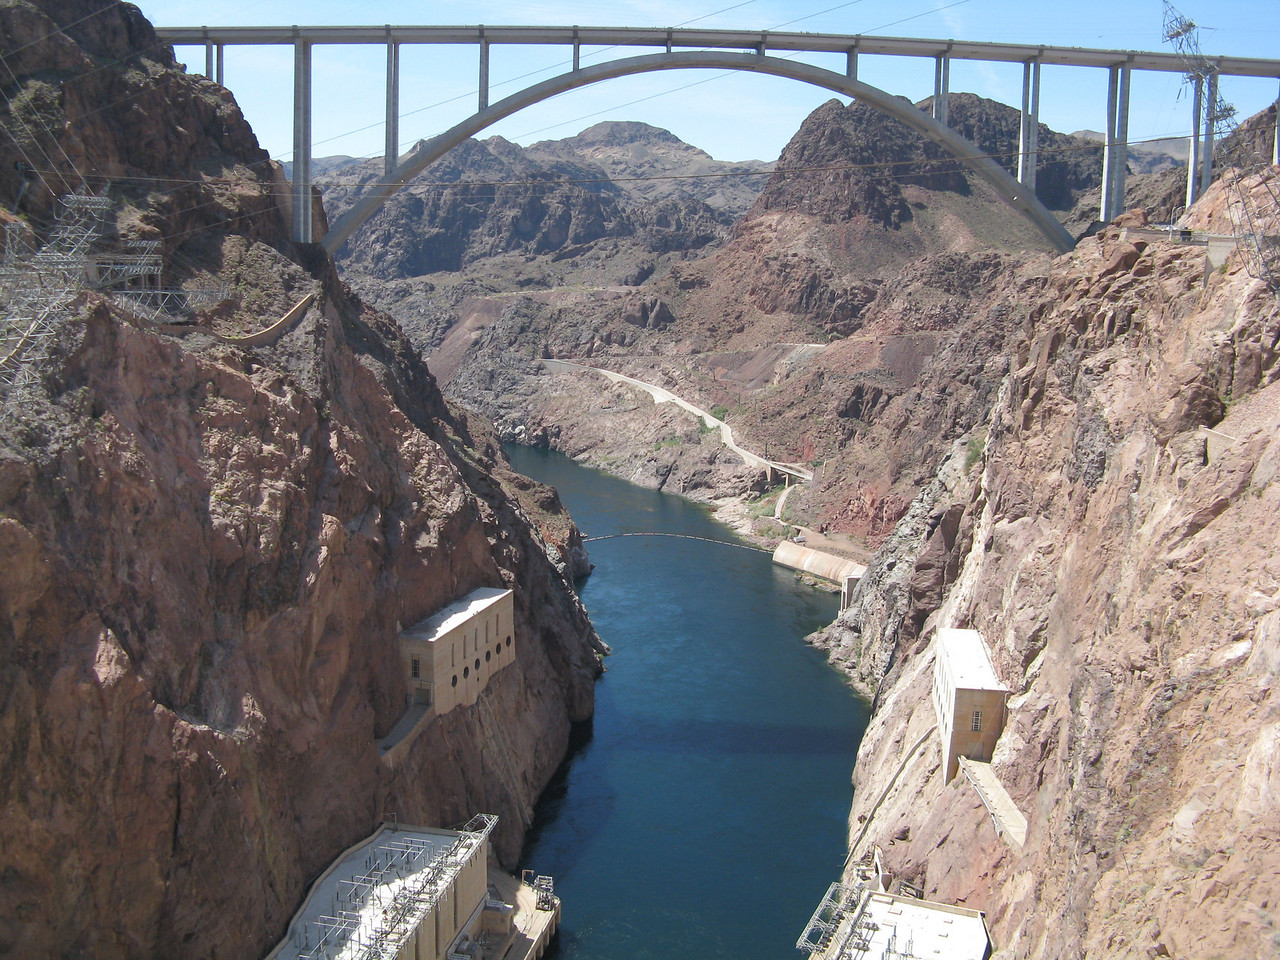 Another view of the bridge and downstream Colorado River from Hoover Dam.